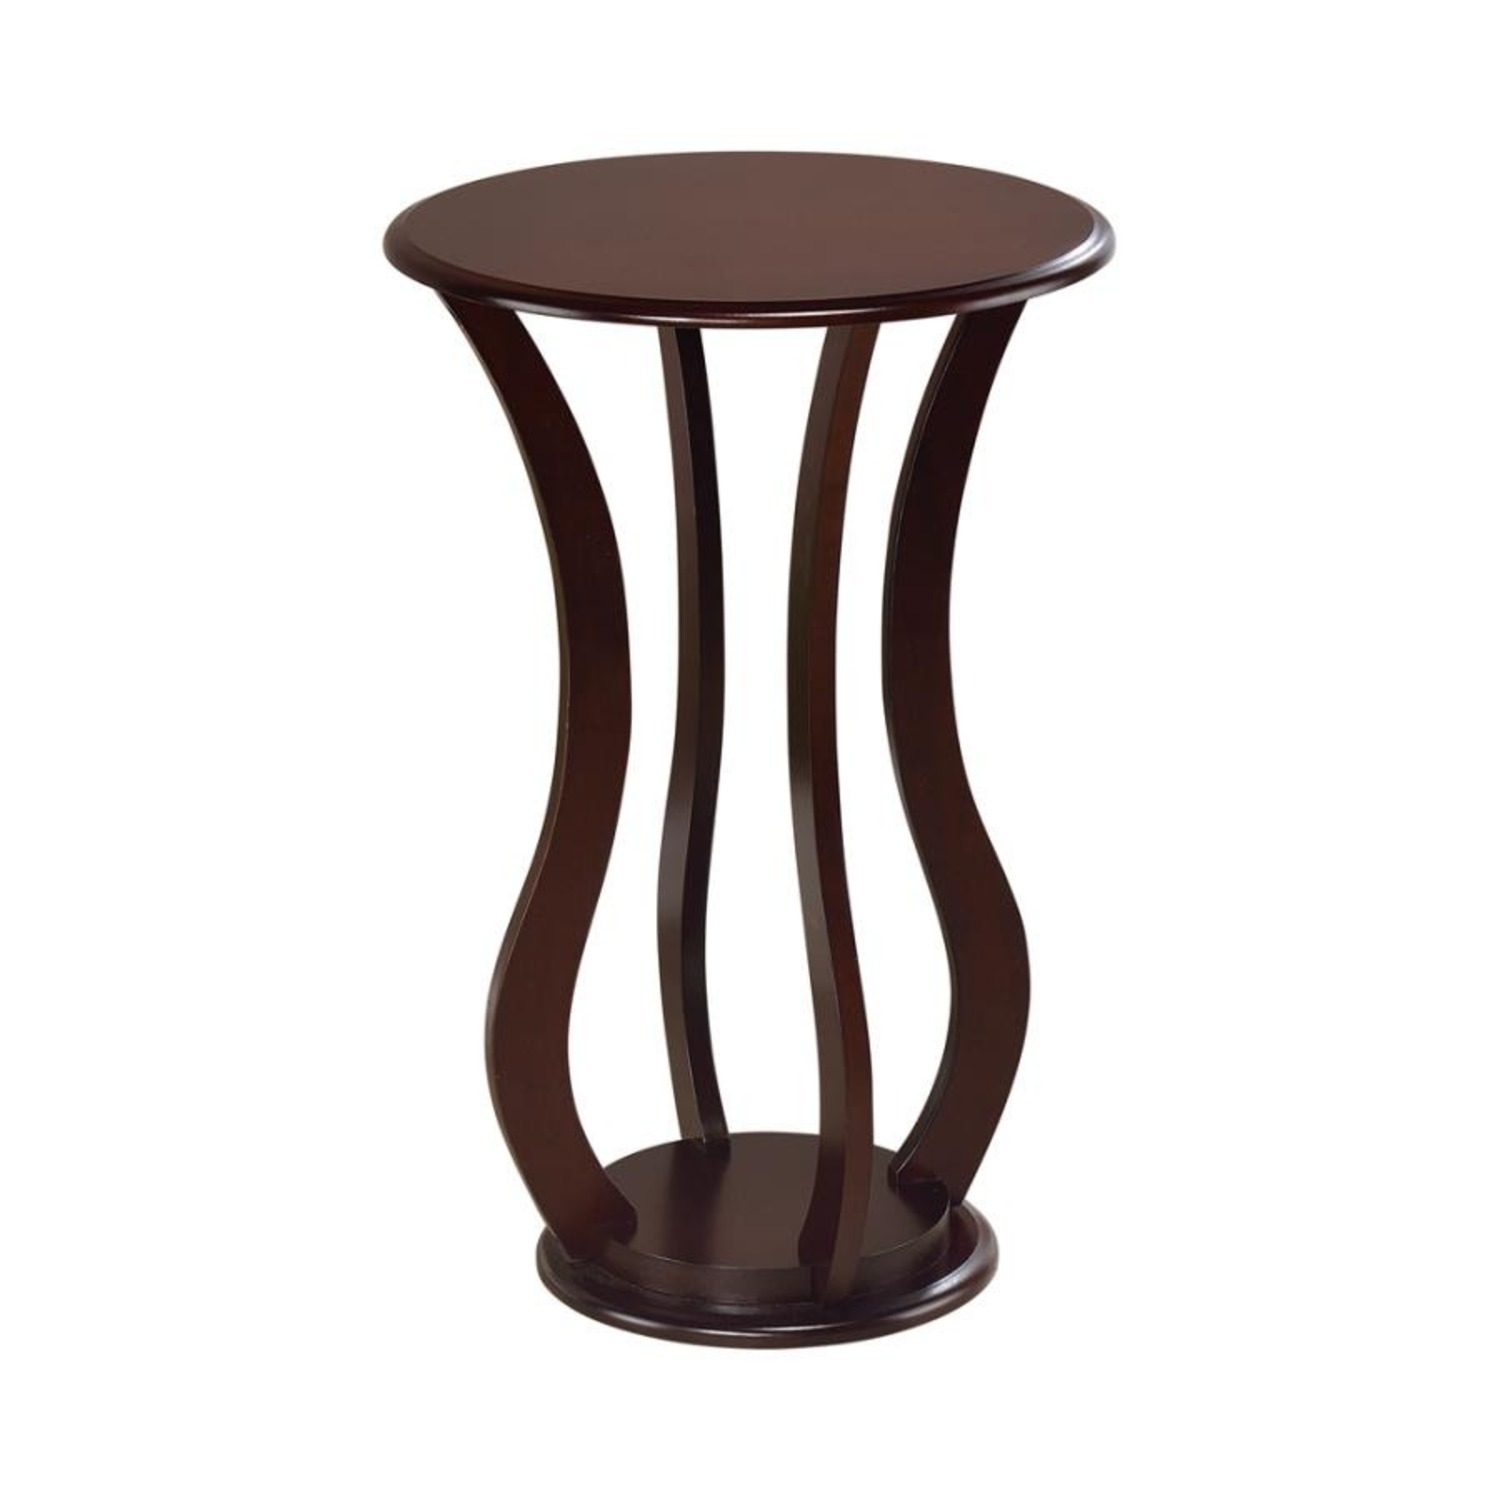 Accent Table In Cherry Finish W/ Bottom Shelf - image-0